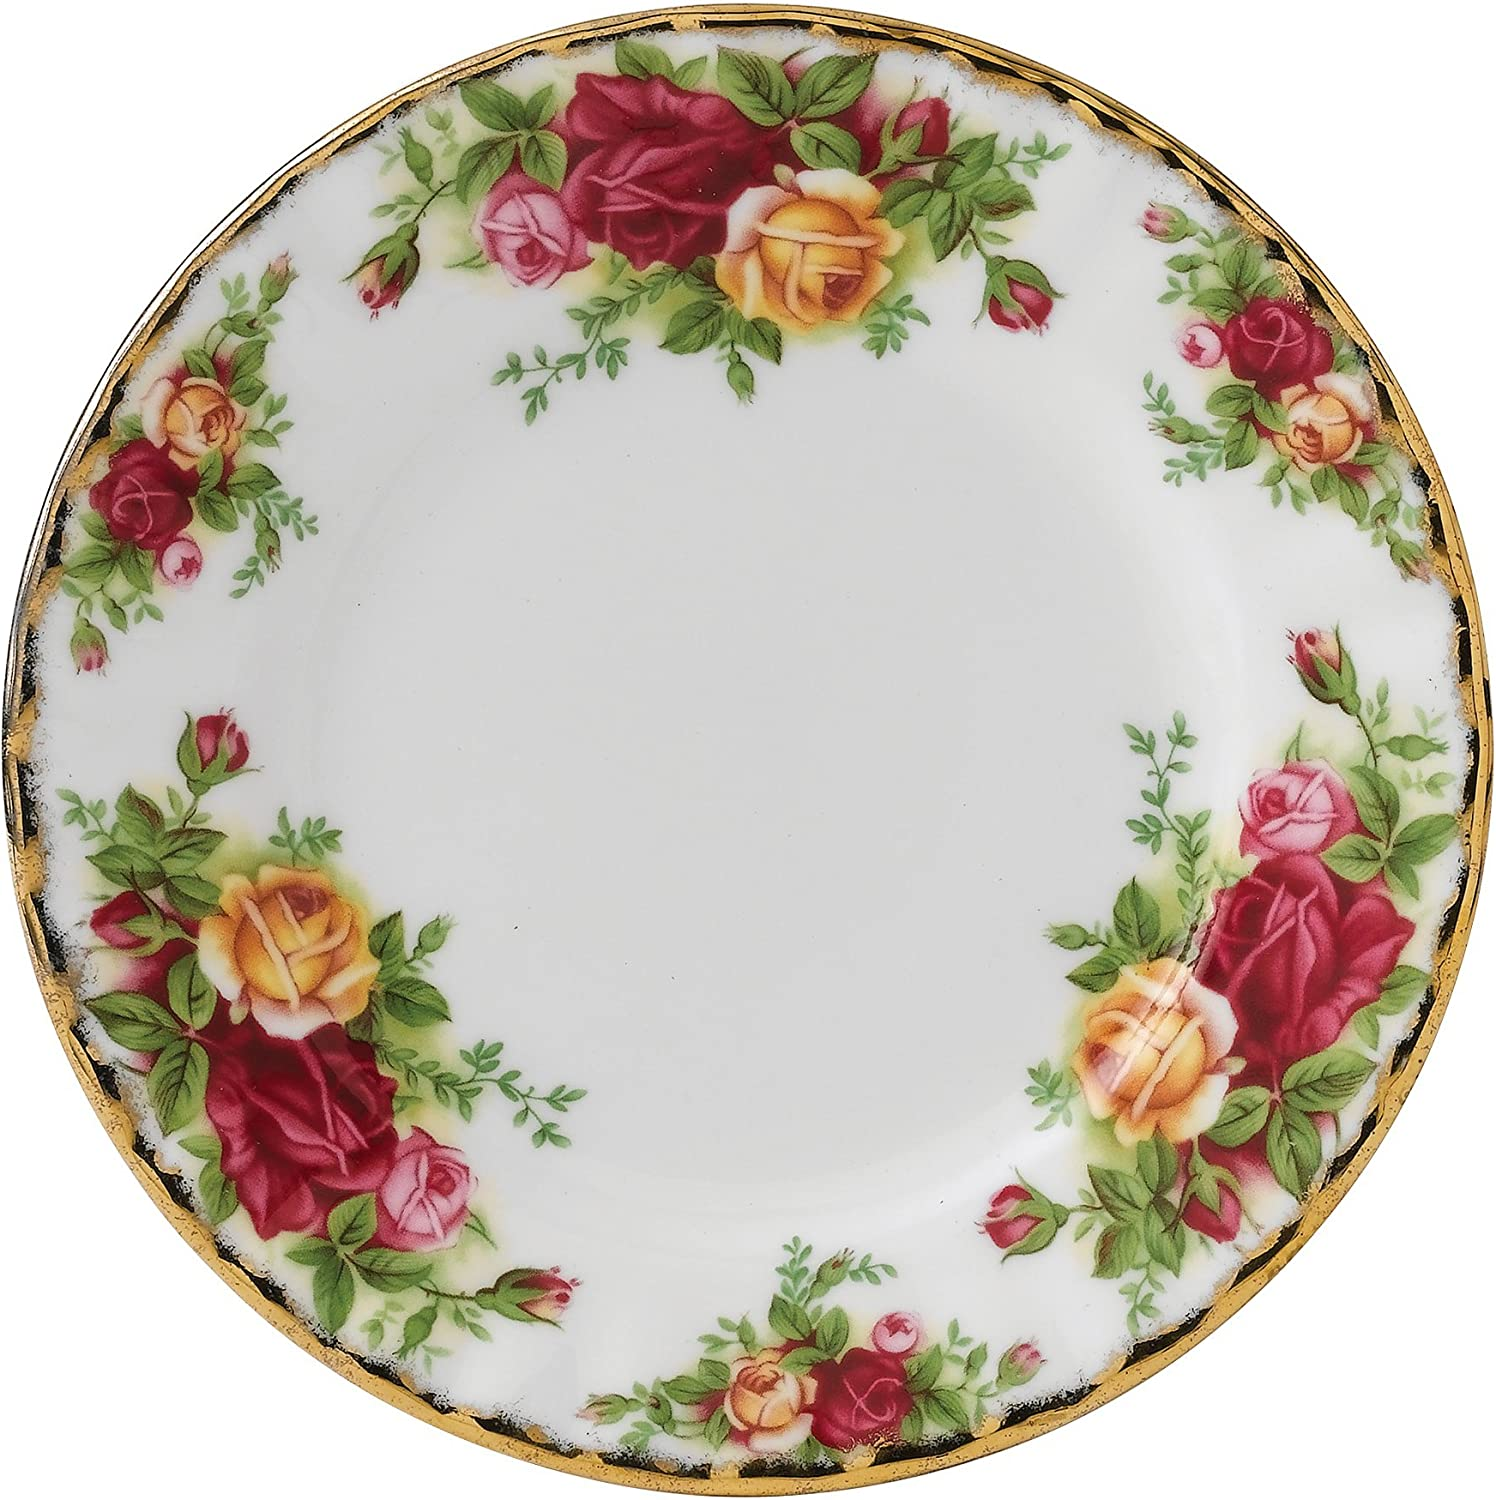 Royal Albert 15210008 Old Country Don't miss the supreme campaign Bread and Plate Roses Butter